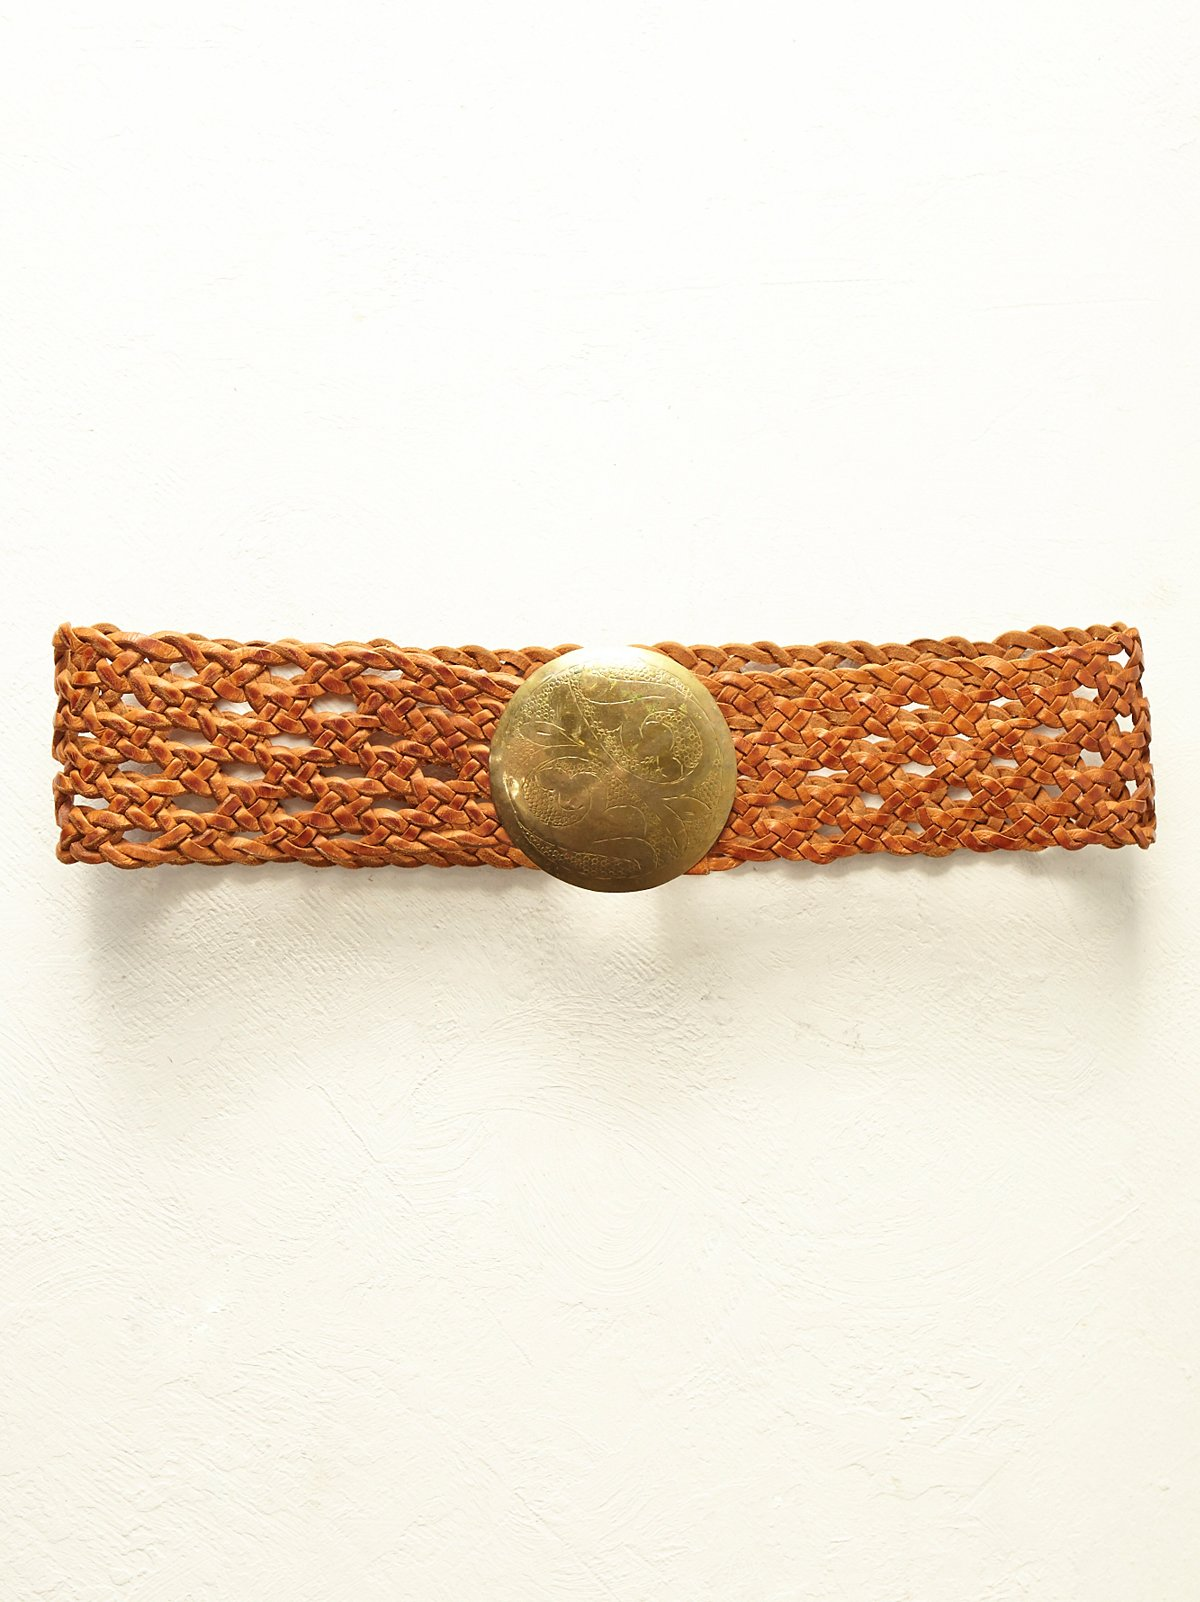 FP Vintage 1970s Woven Leather Belt